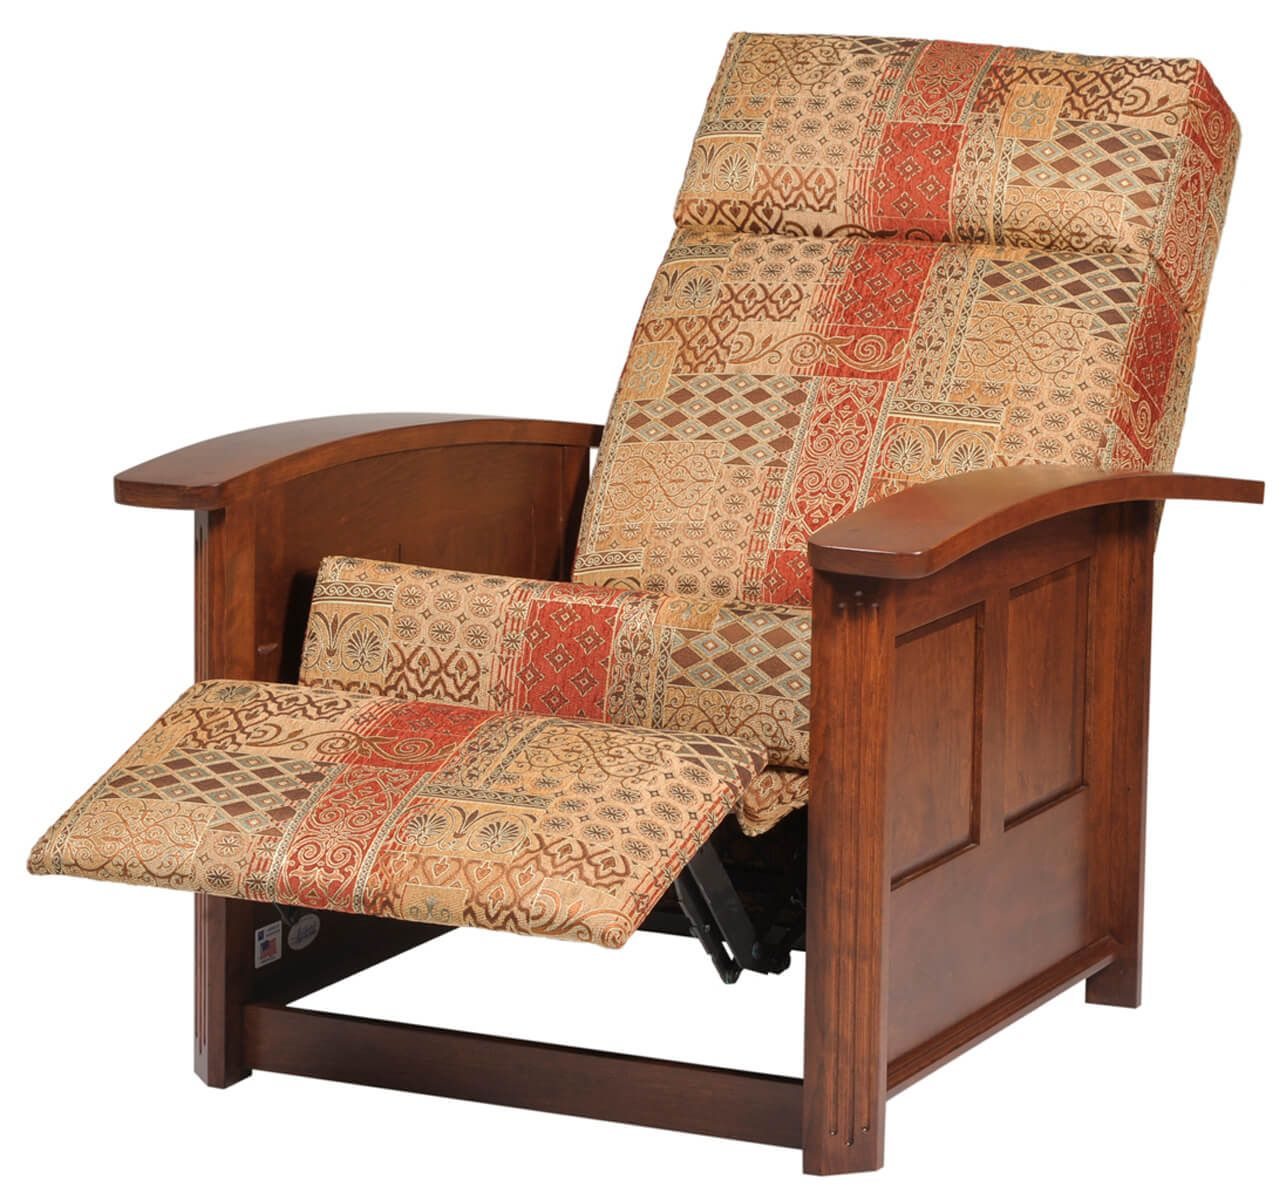 Reclined Amish Chair